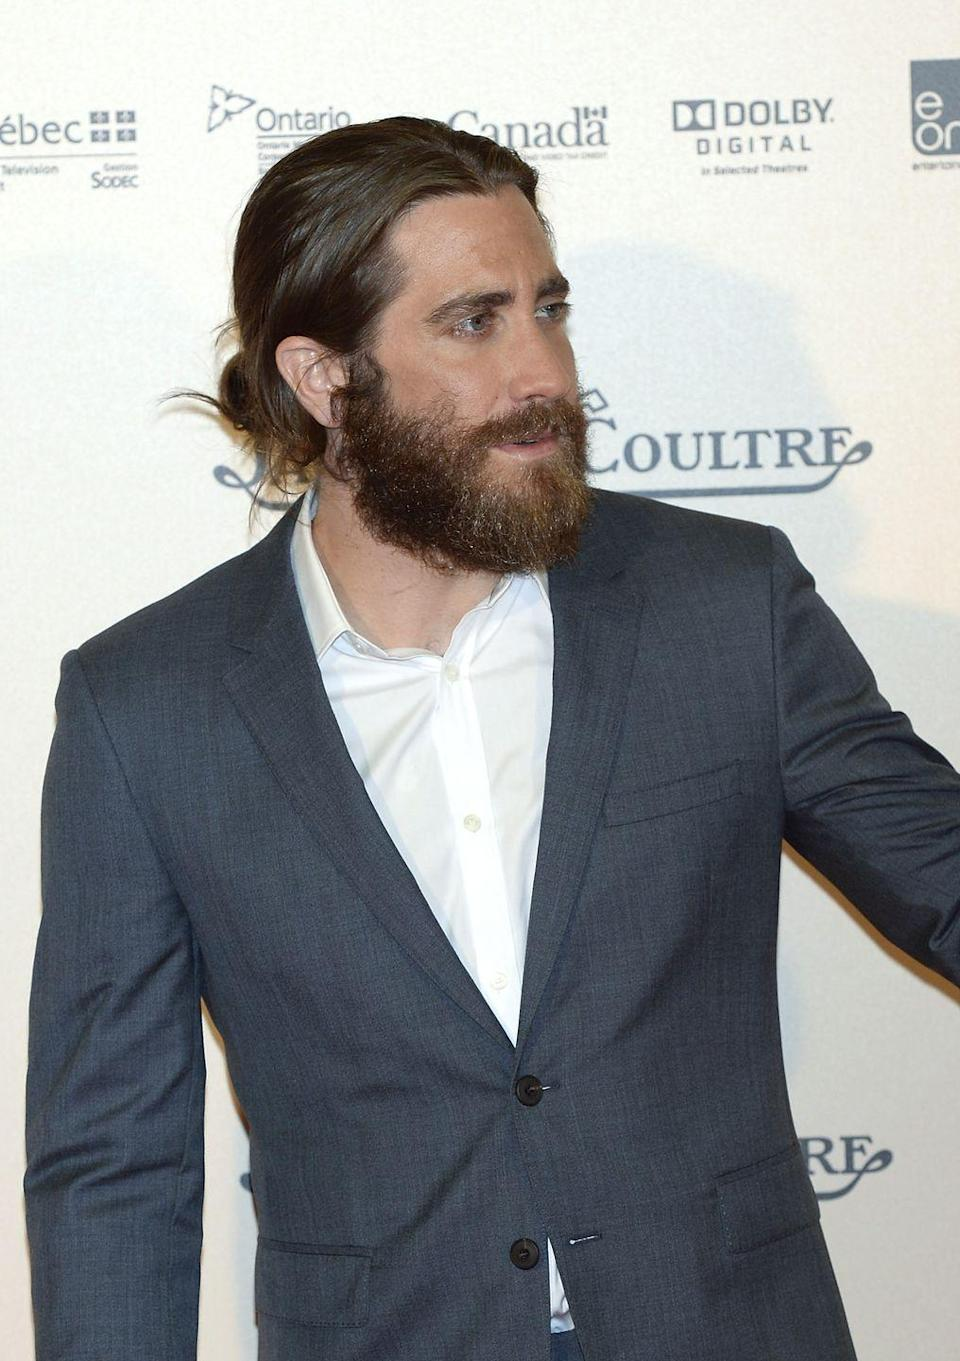 <p>Jake Gyllenhaal normally keeps his hair short, but in 2014 the actor had to grow it past his shoulders for the movie <em>Everest</em>. Gyllenhaal still kept things tidy while on the go and at premieres, favoring the ever-so popular at the time man bun. </p>